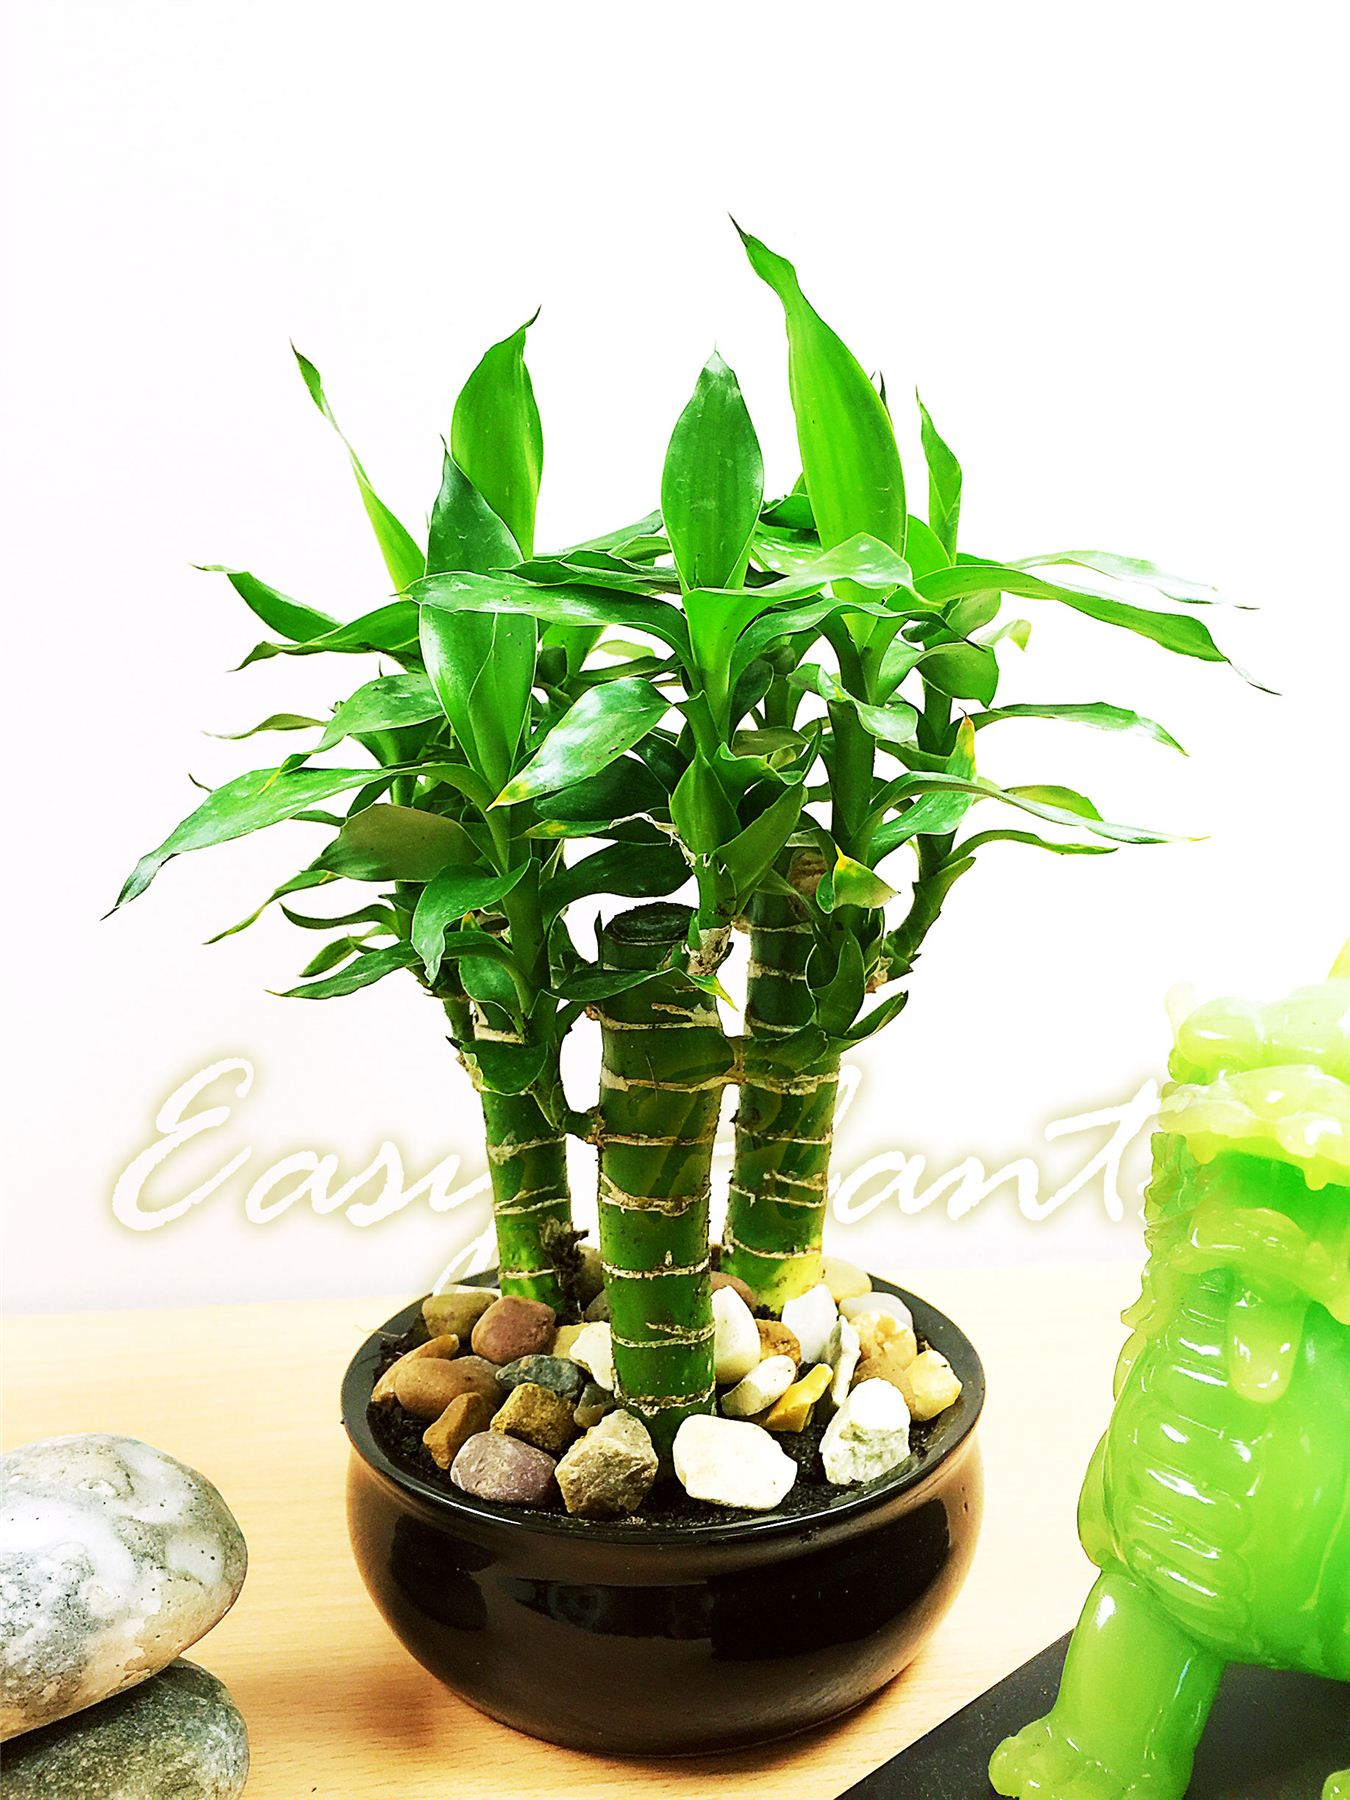 lotus bambou plante d 39 int rieur tubus pot evergreen maison fengshui lucky grand bonsai ebay. Black Bedroom Furniture Sets. Home Design Ideas